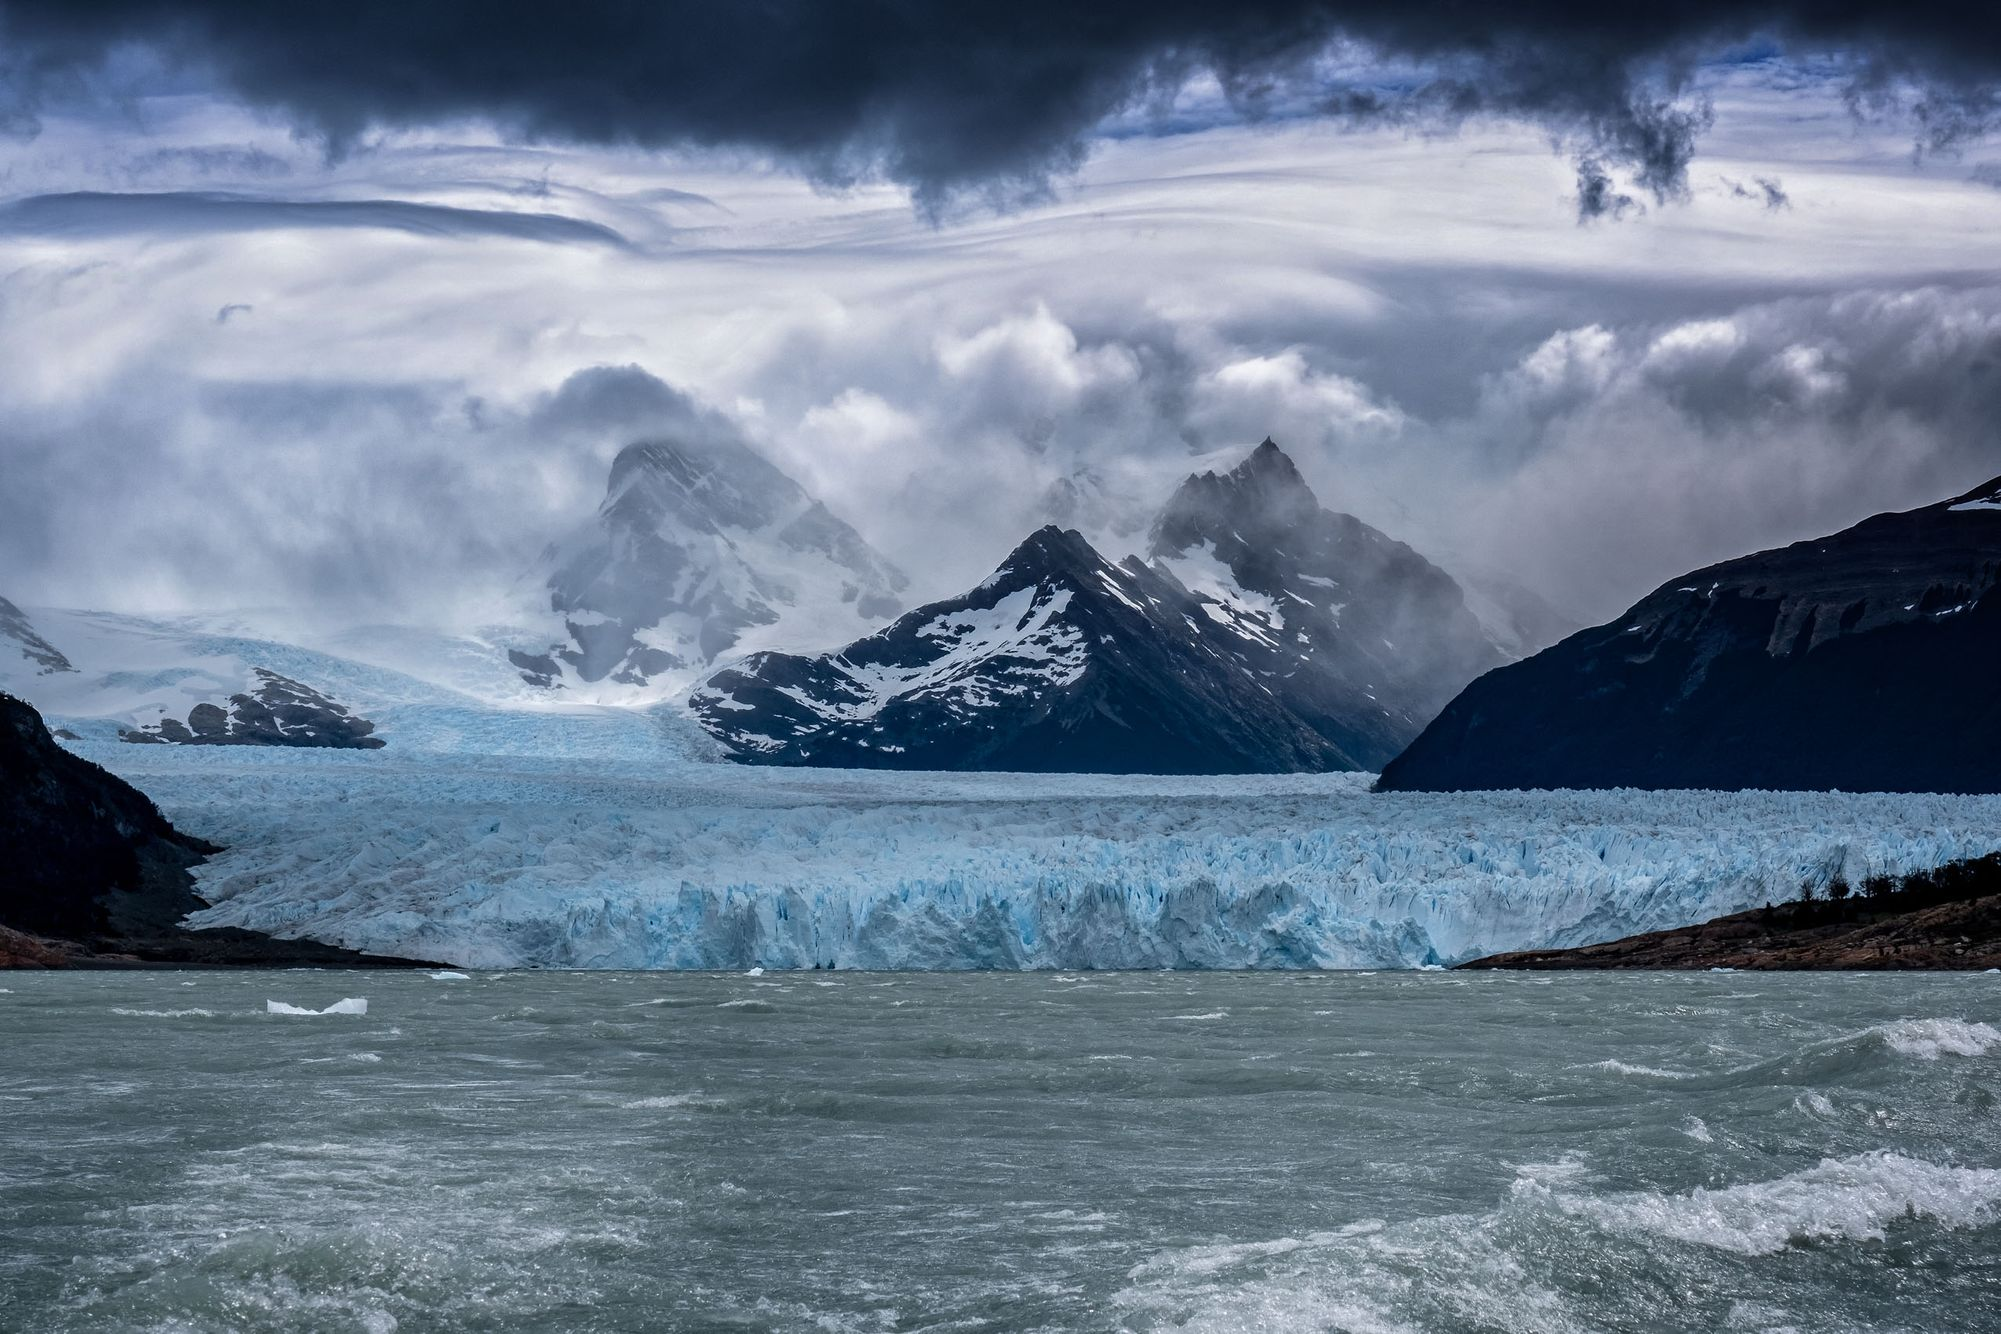 ARGENTINA:  Los Glaciares—Patagonian Land, Sea and Ice Scapes